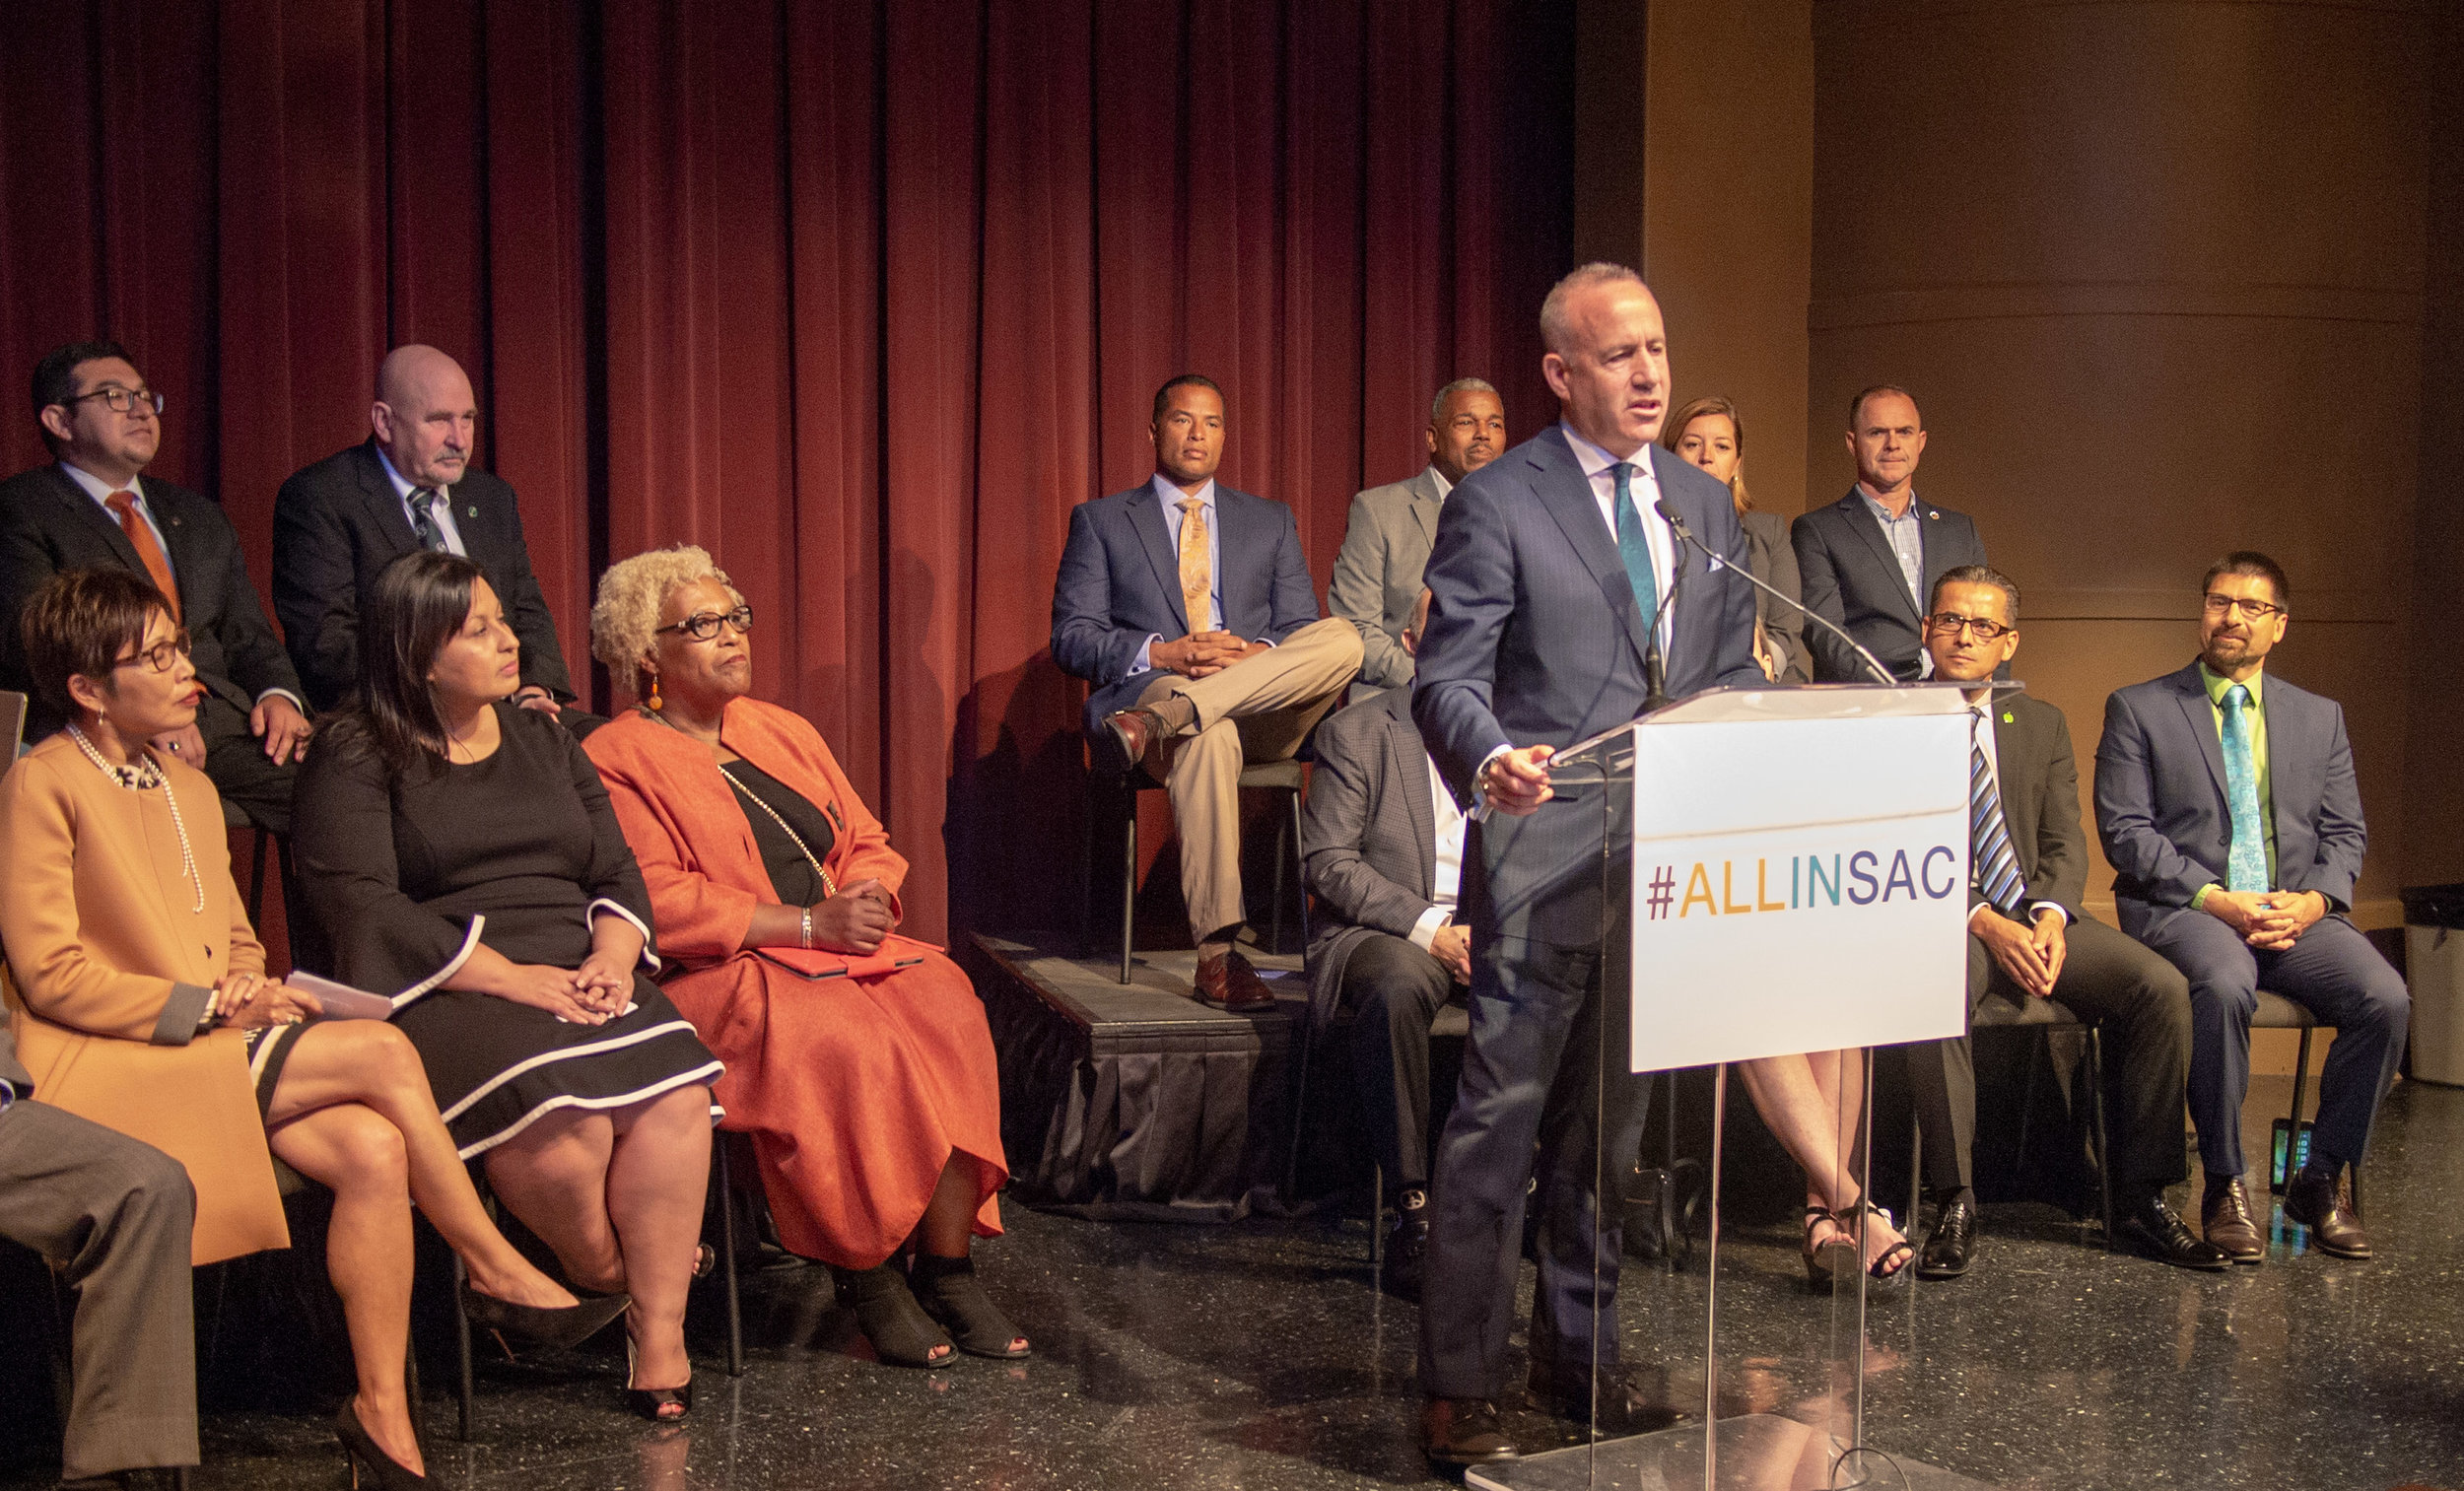 Mayor Steinberg outlines his vision for Measure U at a June 7 speech at Sacramento City College